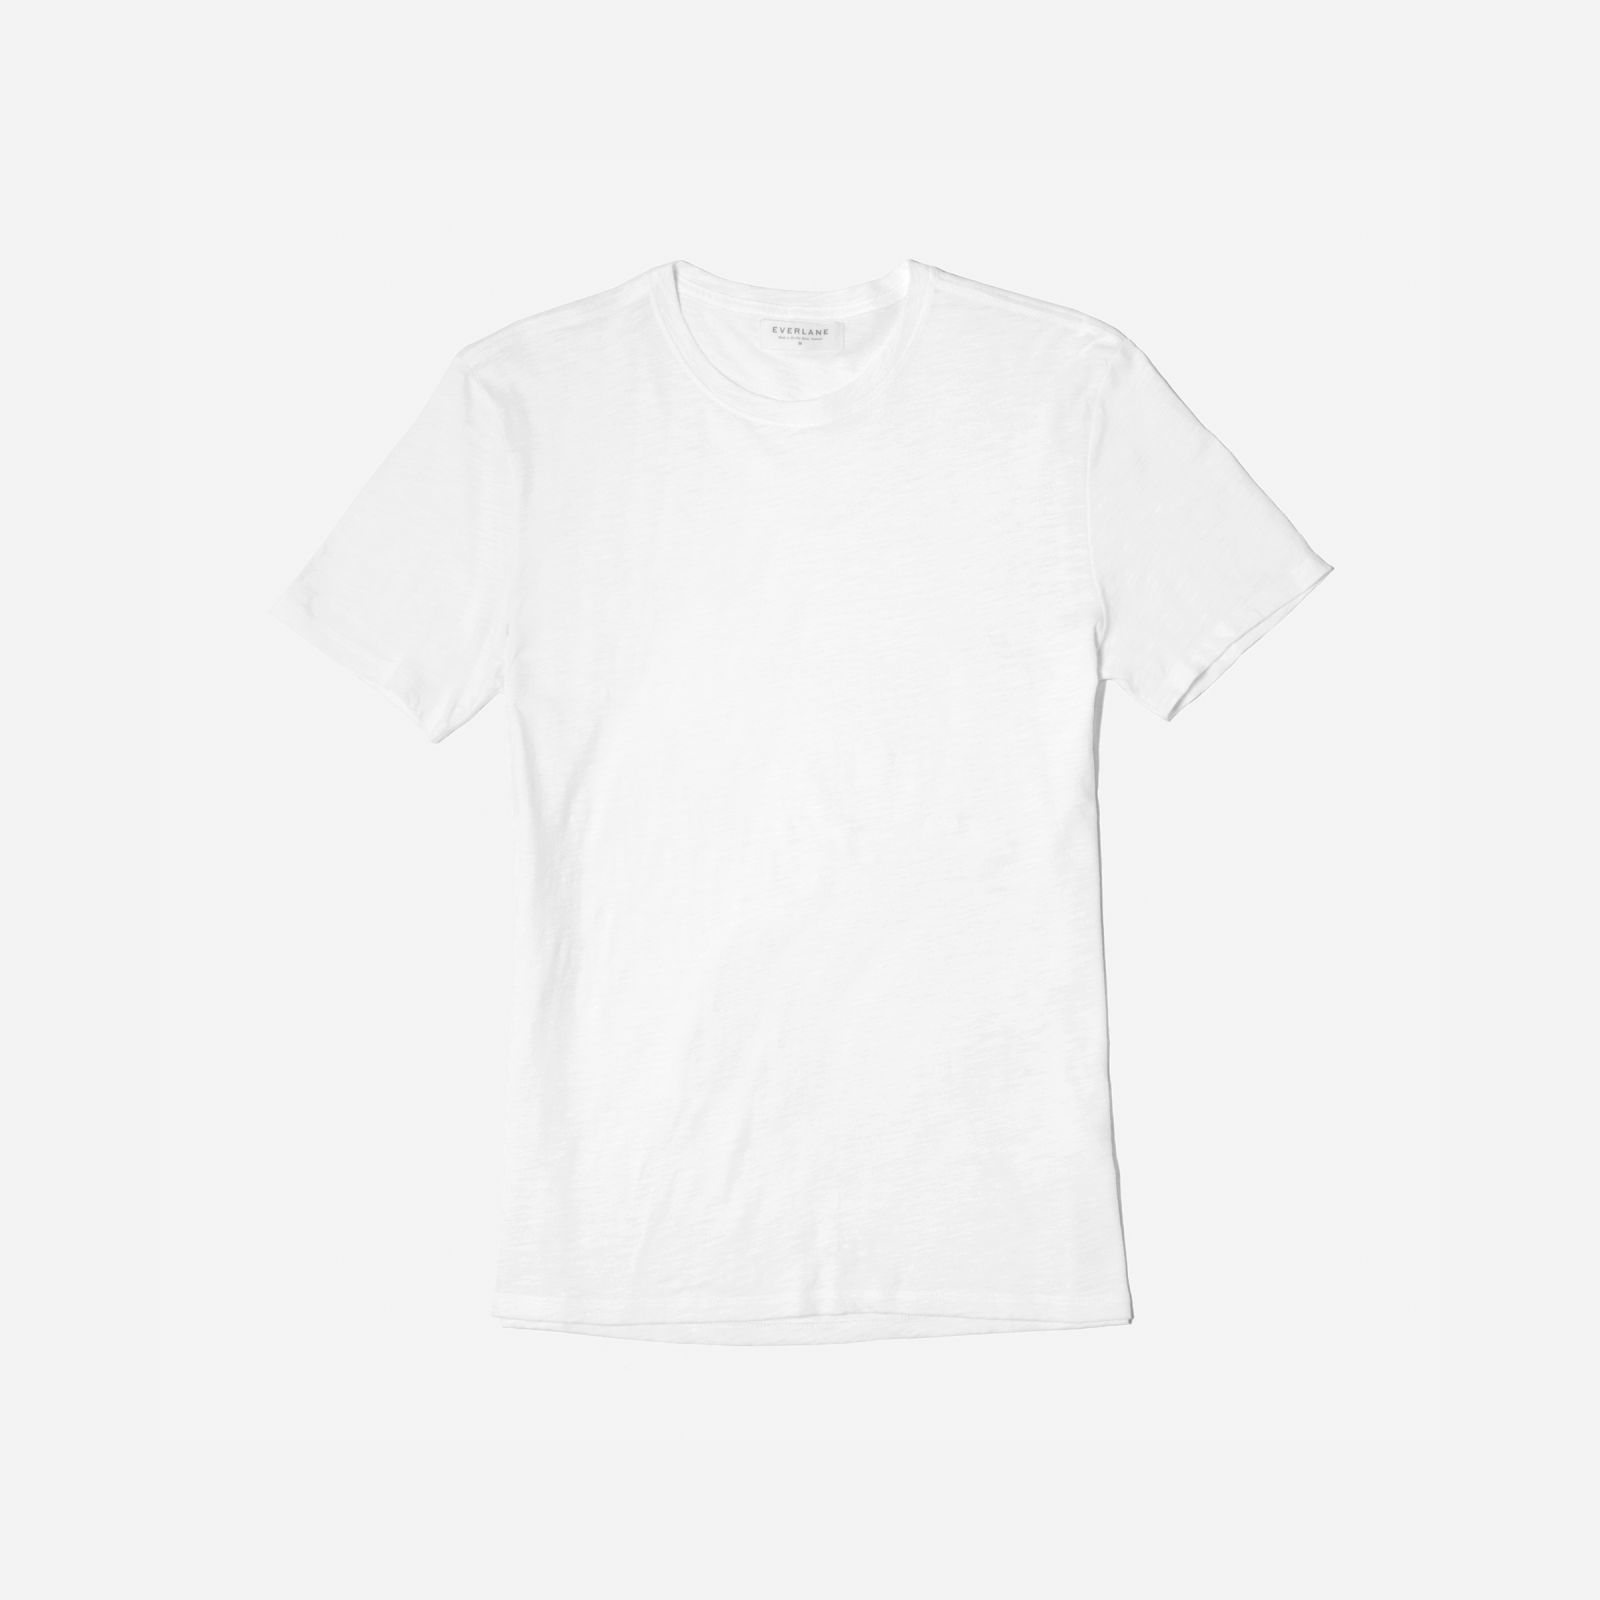 men's air crew t-shirt by everlane in white, size xl